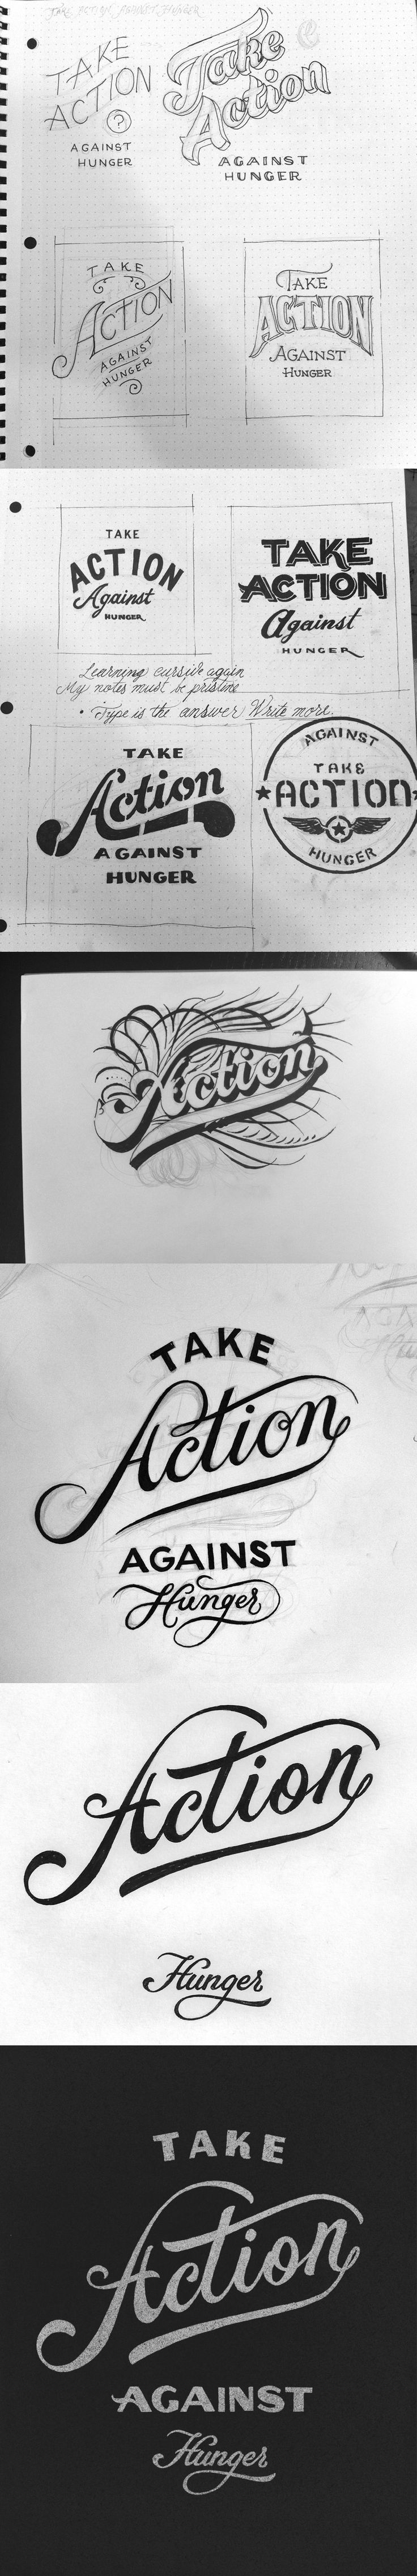 take action typography exploration